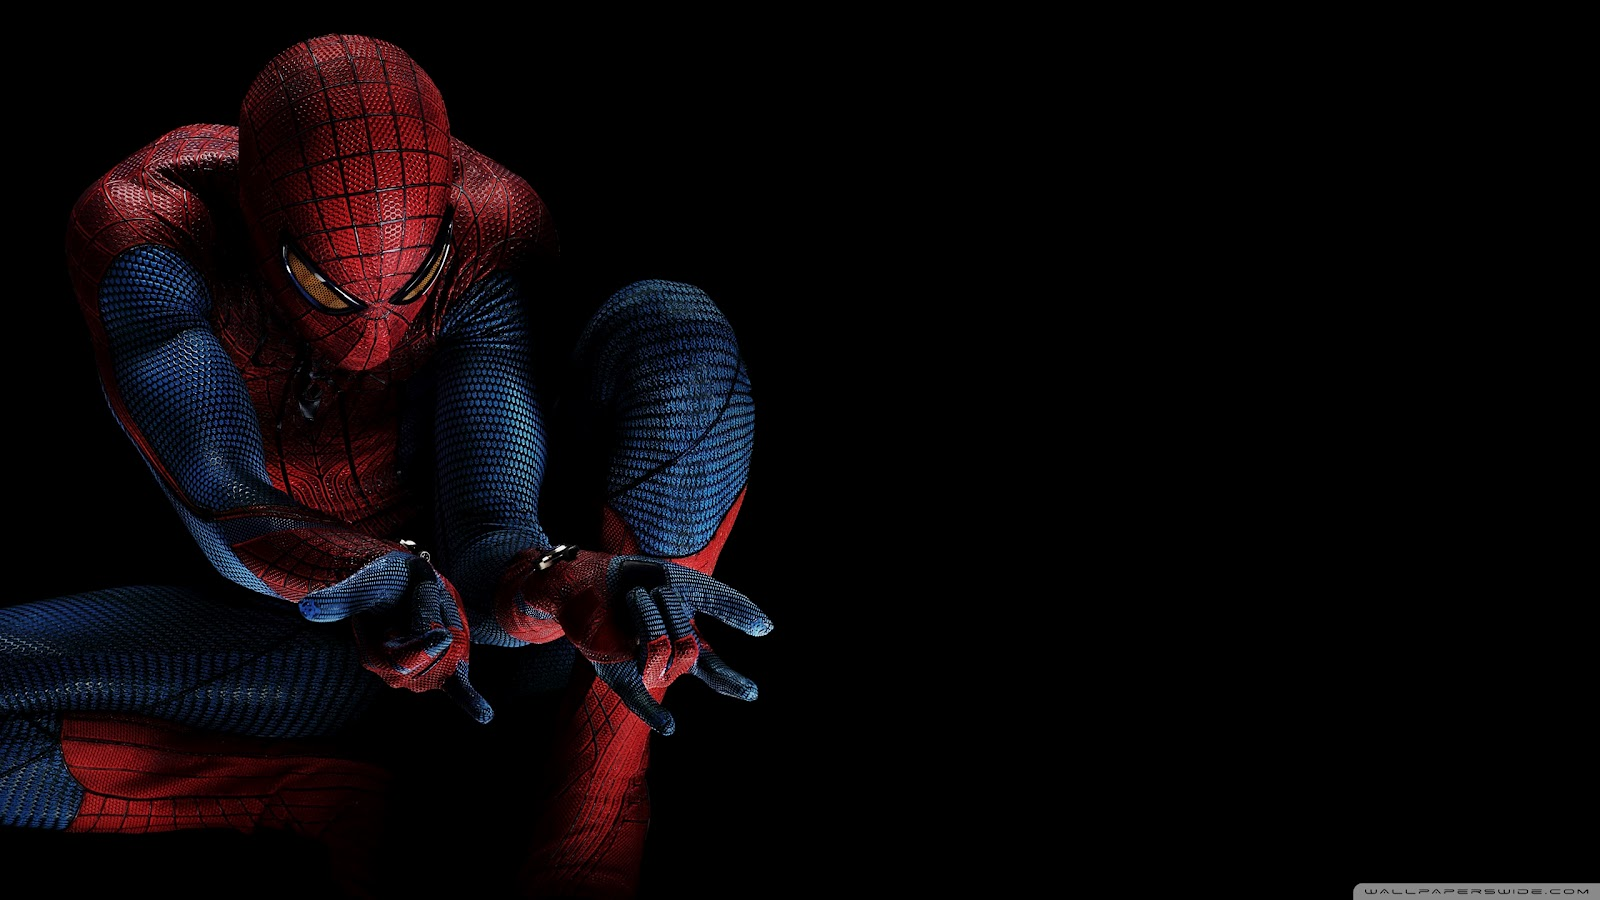 The Amazing Spiderman Wallpaper | All About Movies